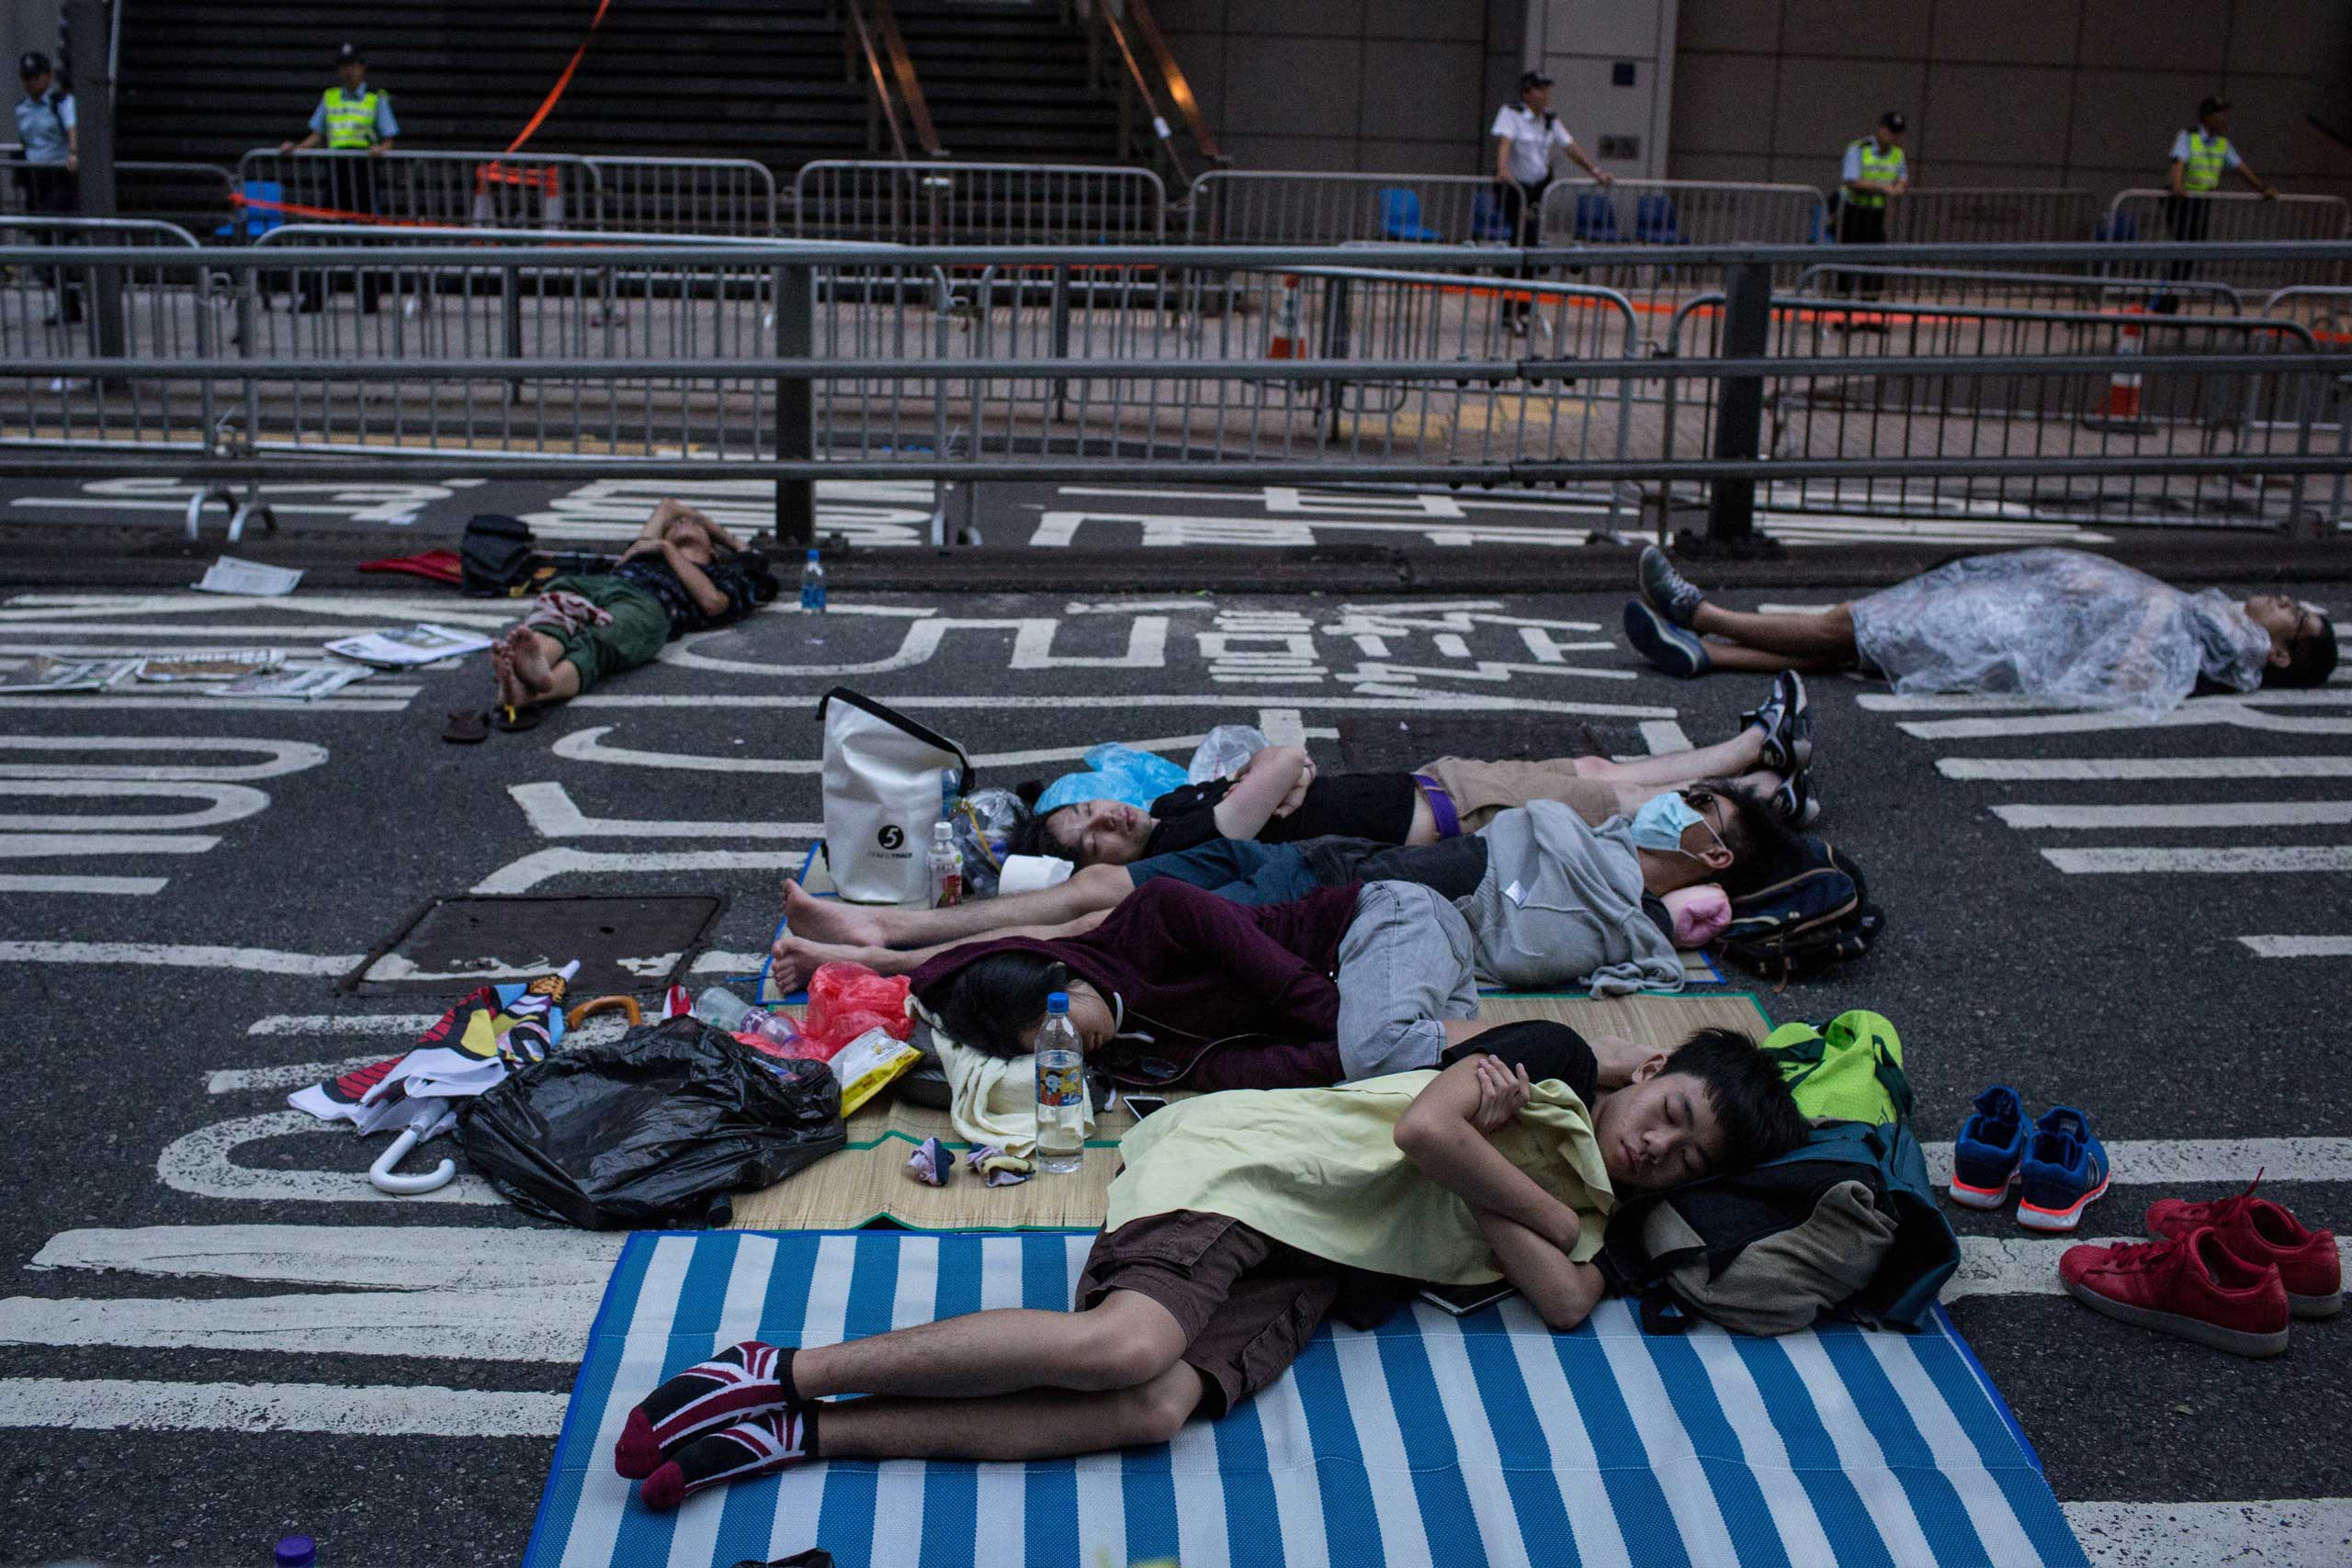 Protesters sleep on the road outside the Police Headquarters building on Oct. 2, 2014 in Hong Kong, Hong Kong.